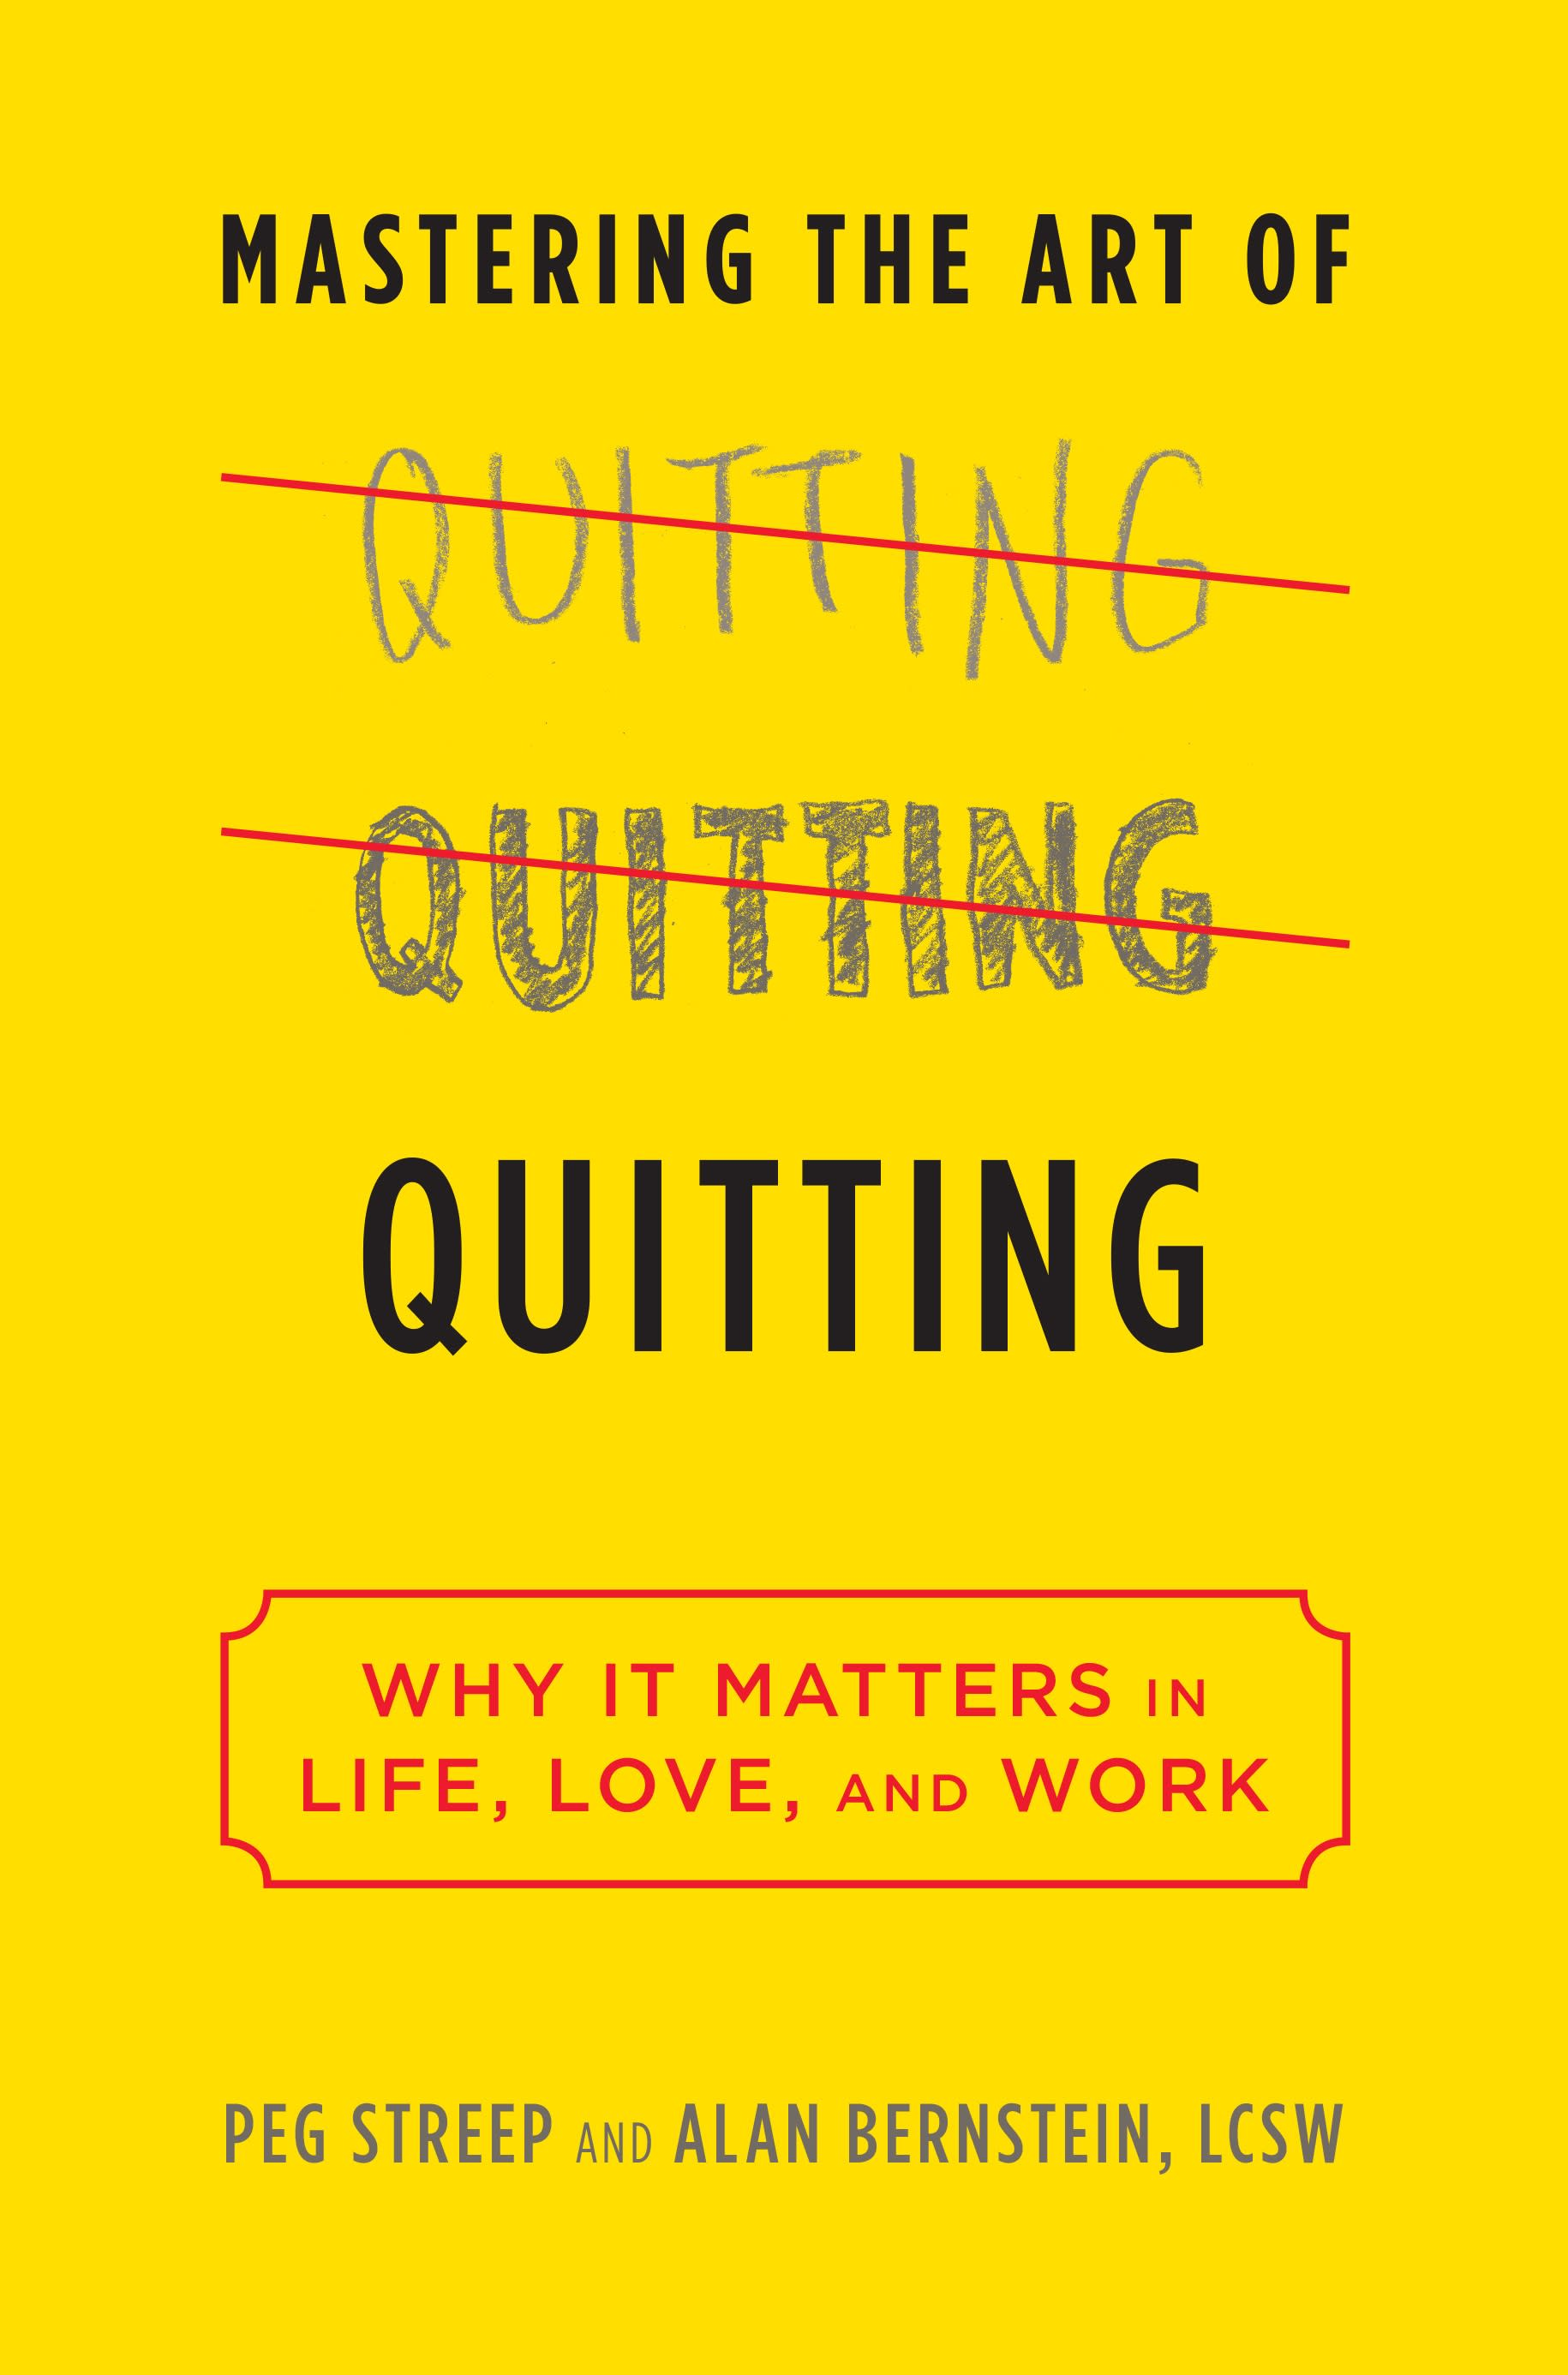 ONE TIME USE Handout: Mastering the Art of Quitting